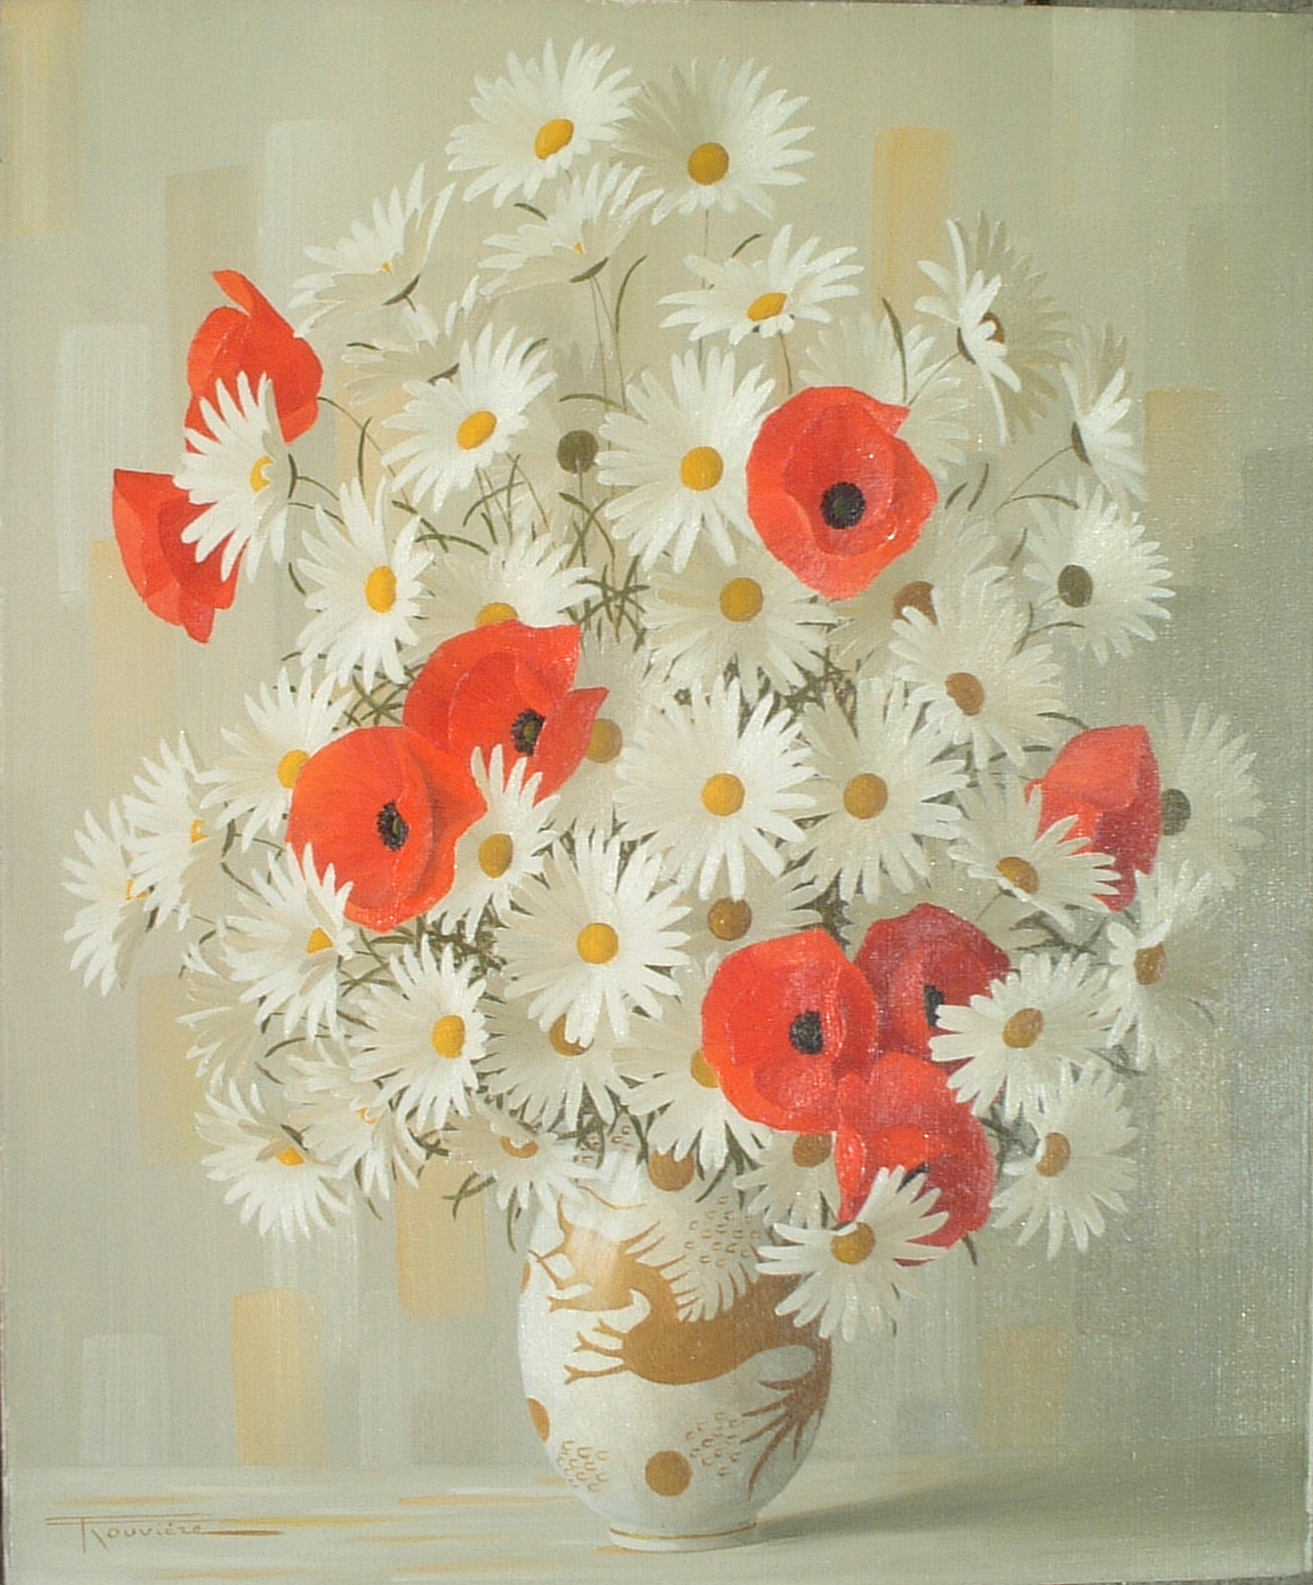 Artist: Elisabete Rouviere Title: Daisies and Poppies Size: 20in x 24in Framed: No Medium: Oil on Canvas